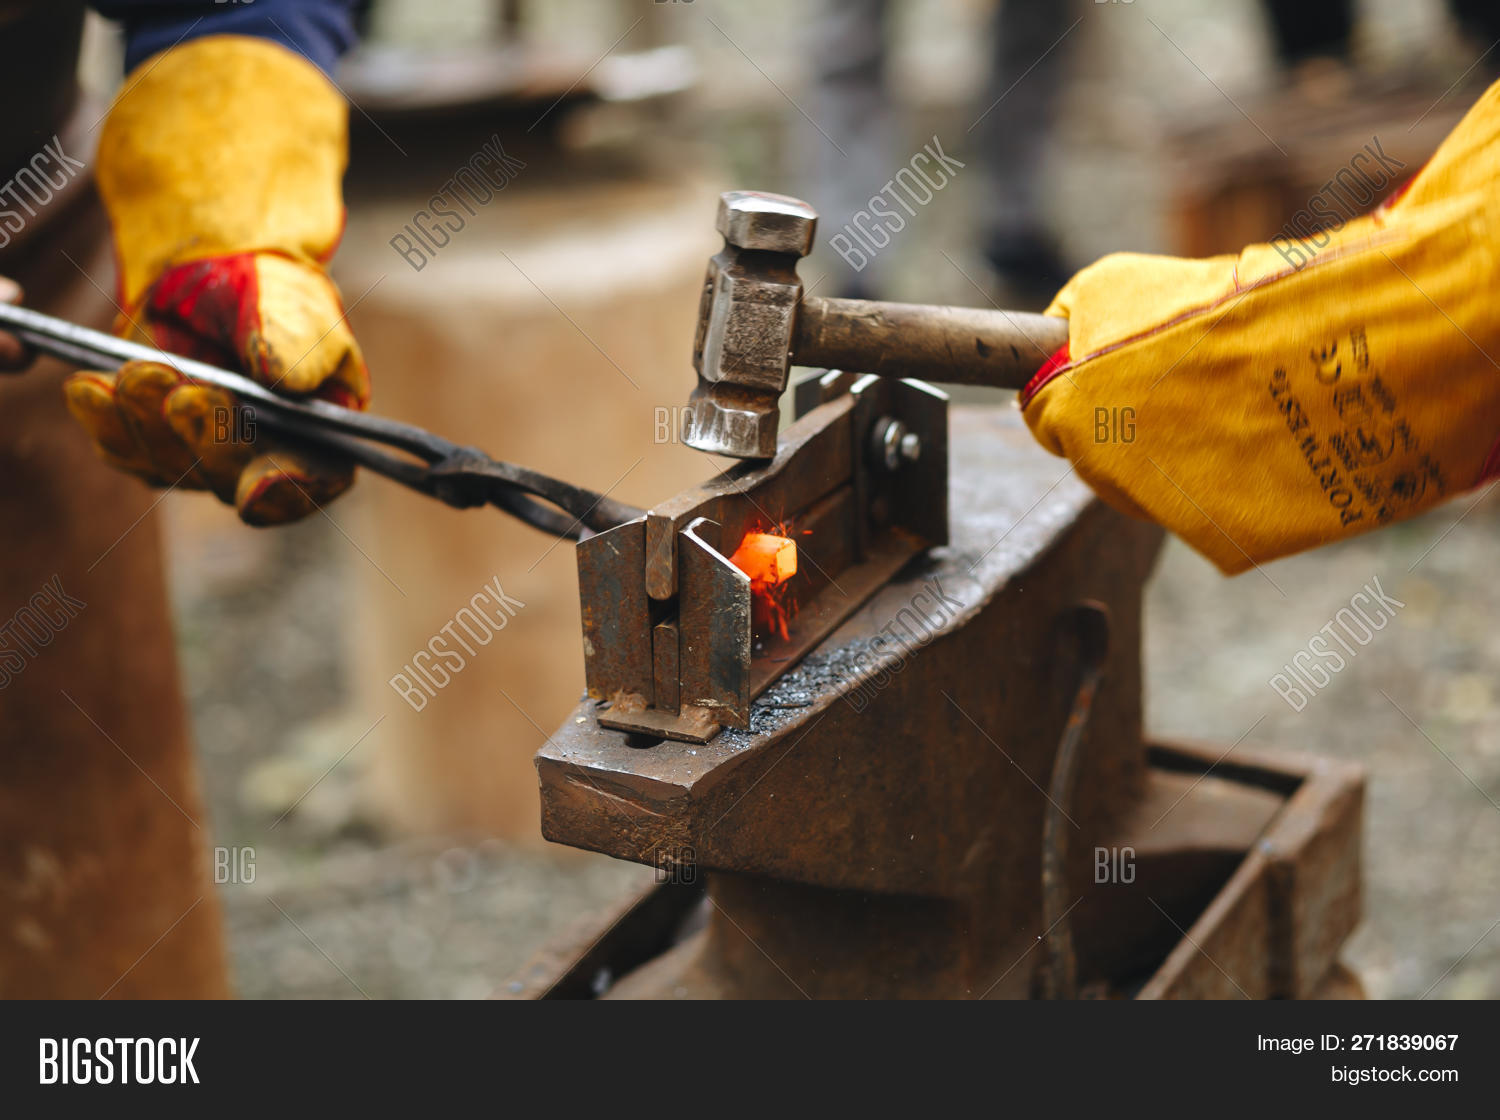 Blacksmith's Anvil Image & Photo (Free Trial) | Bigstock